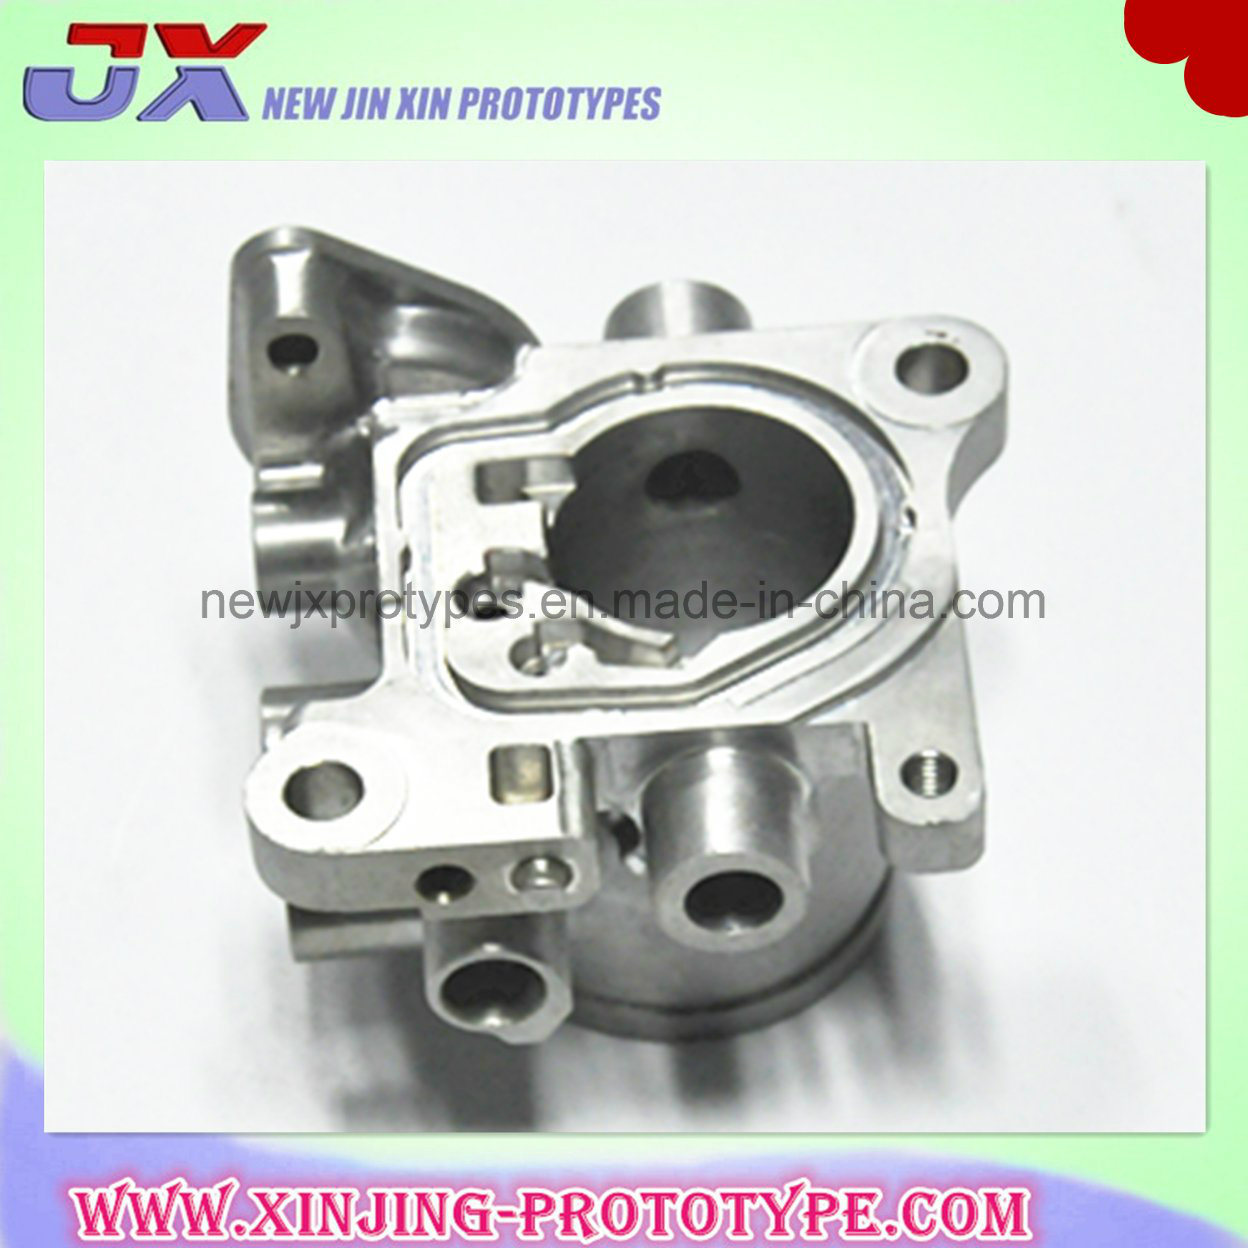 Custom Aluminum CNC Machining Parts High Precision Lathe Turned Parts